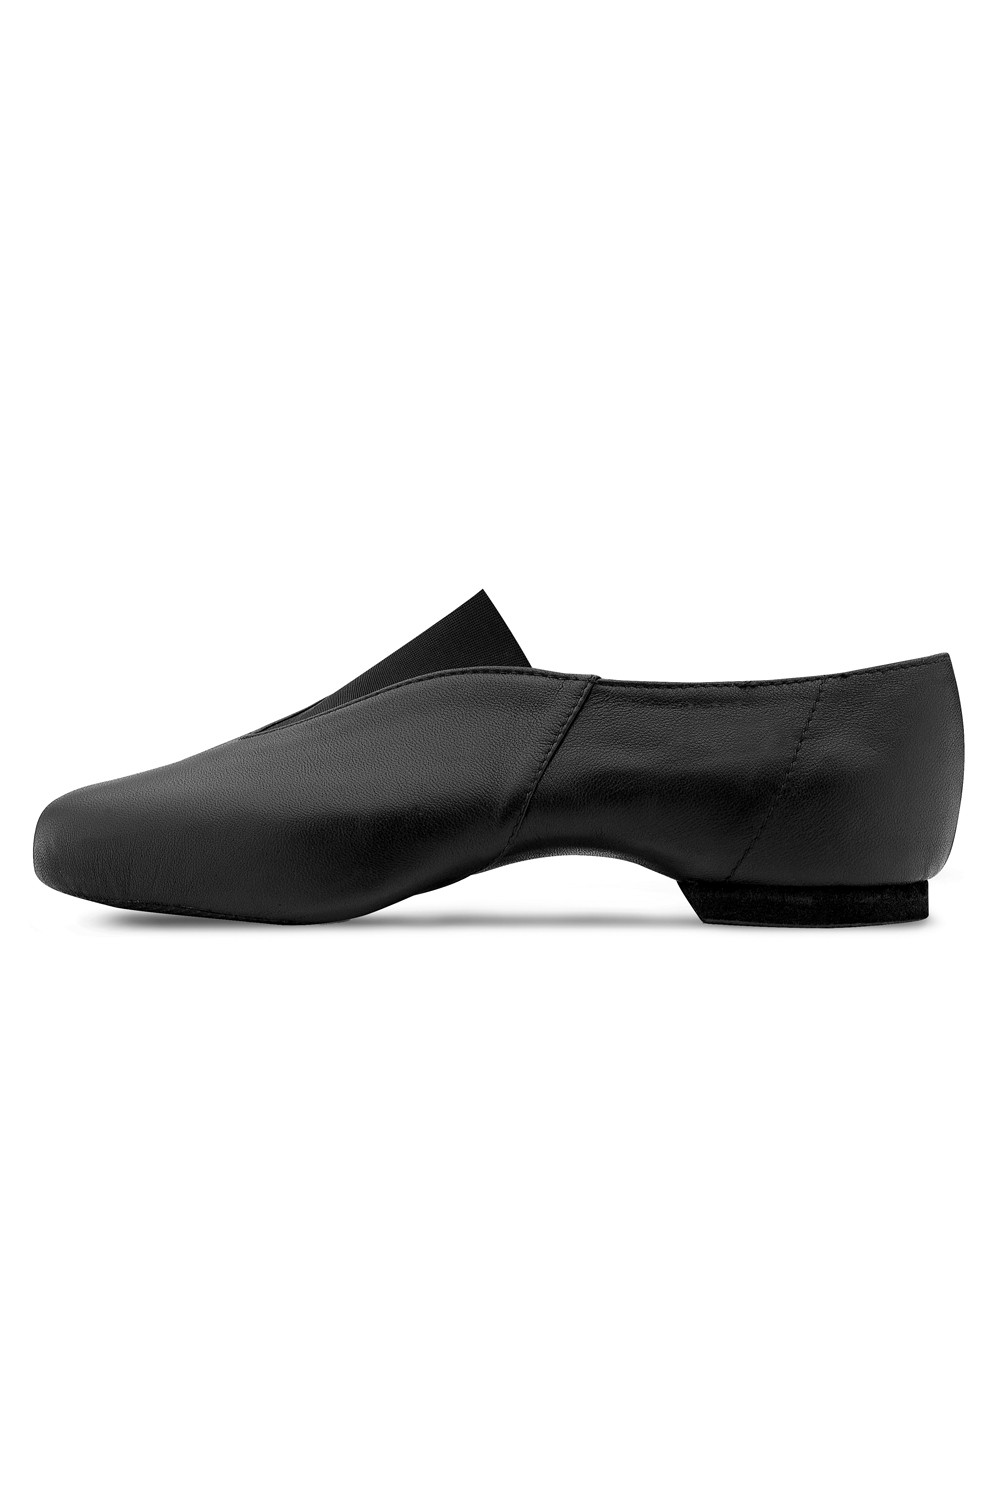 Pure Jazz Girl's Jazz Shoes